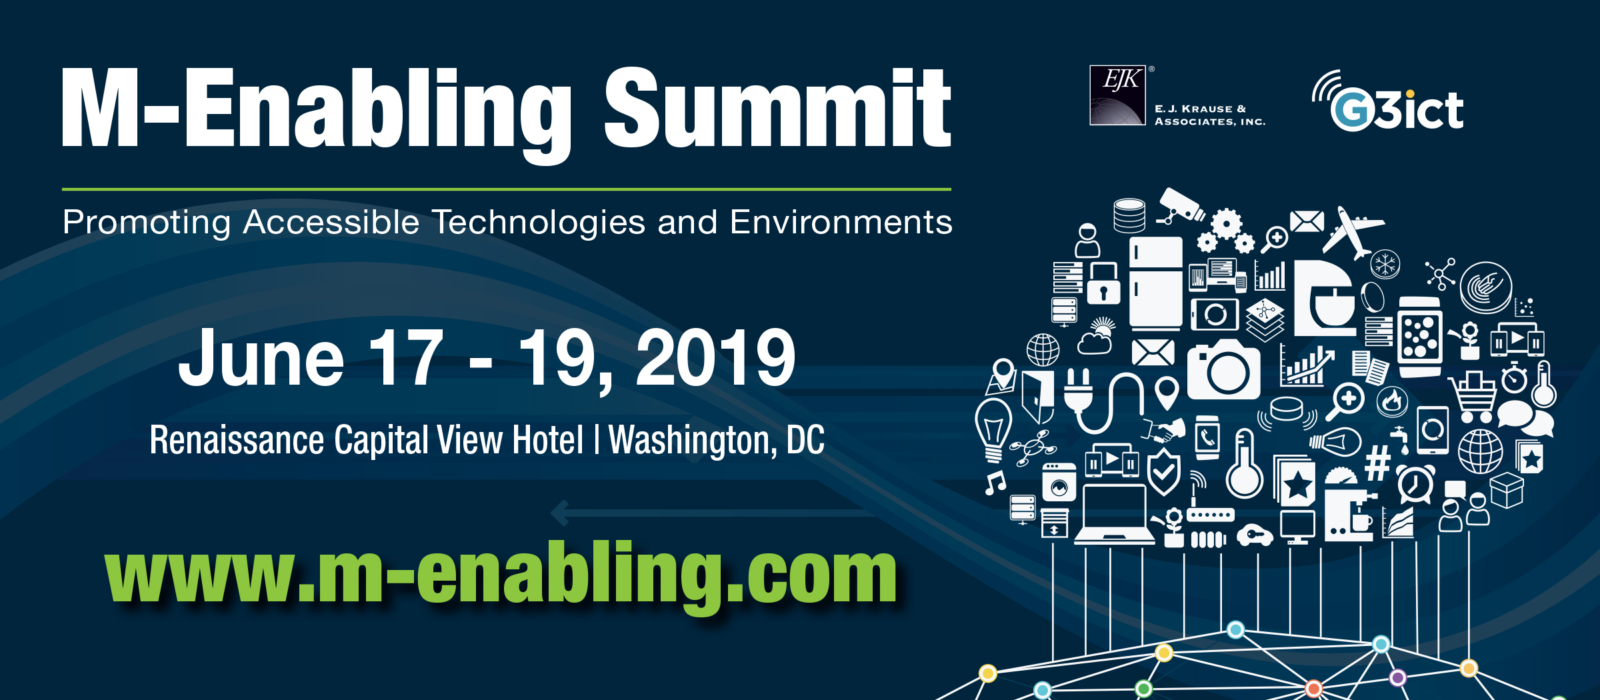 m-Enaling Summit June 17-19, 2019